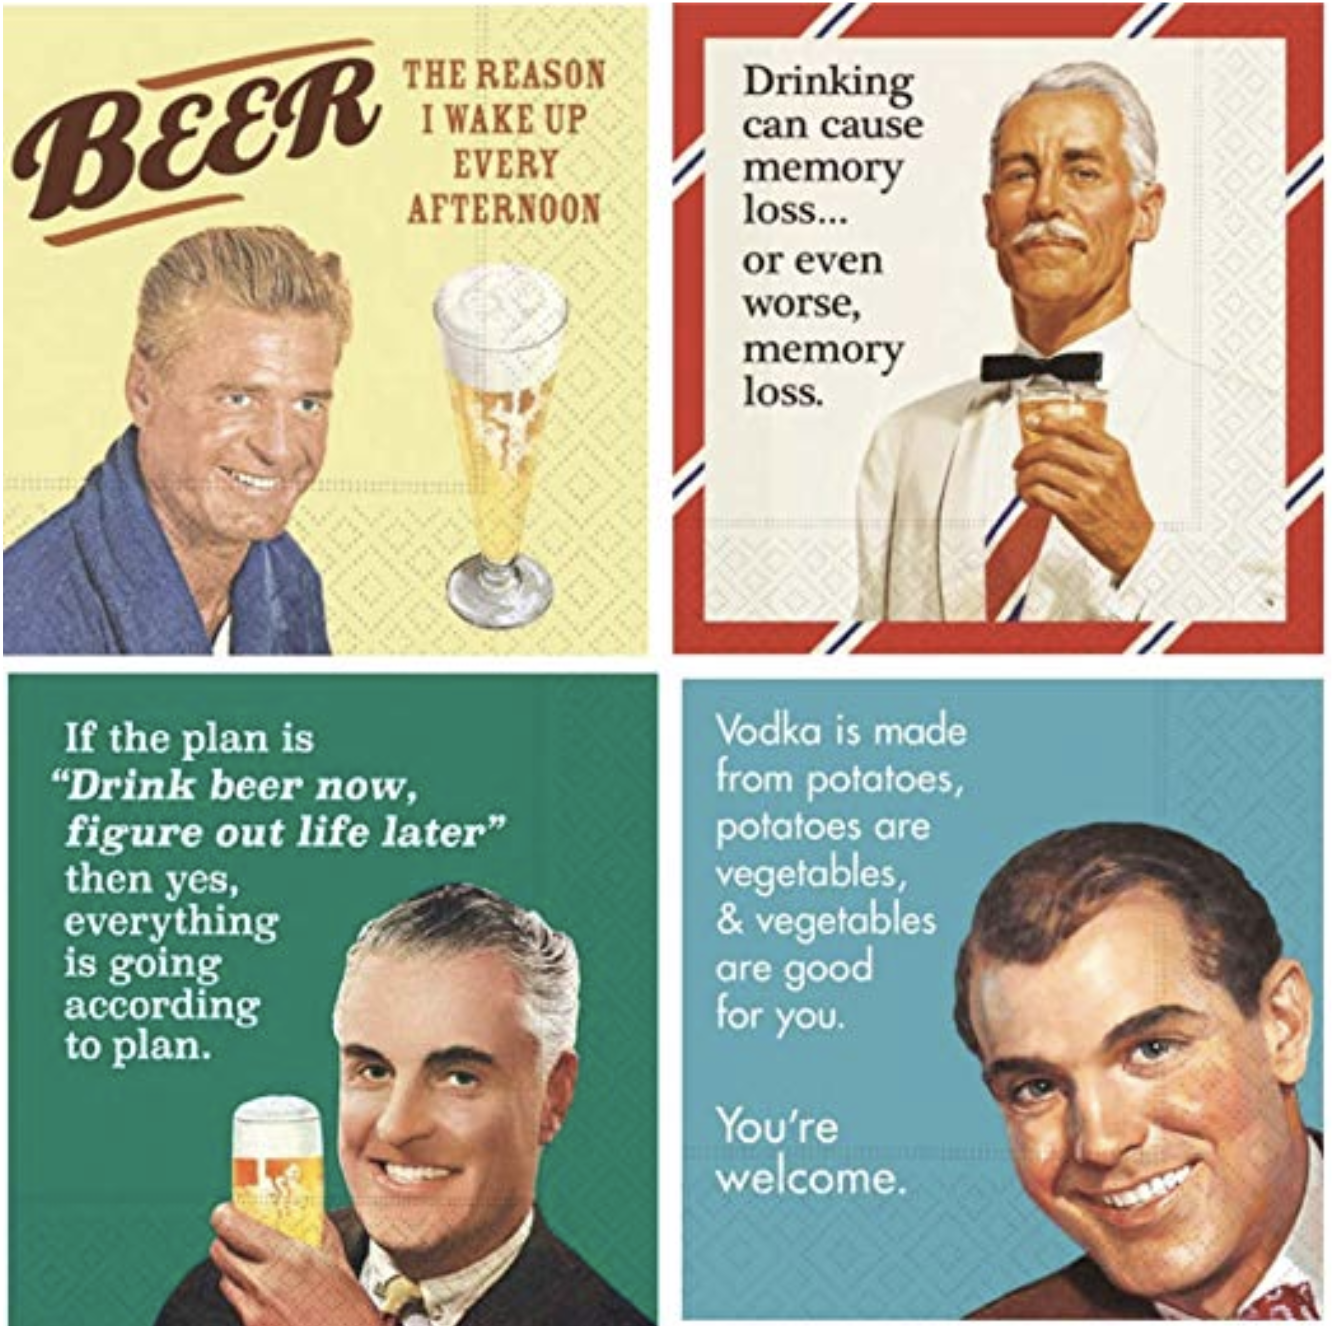 The amusing cocktail napkin at bottom right illustrates why I don't like 'you're welcome': it carries too strong a whiff of 'and now you  owe  me'.